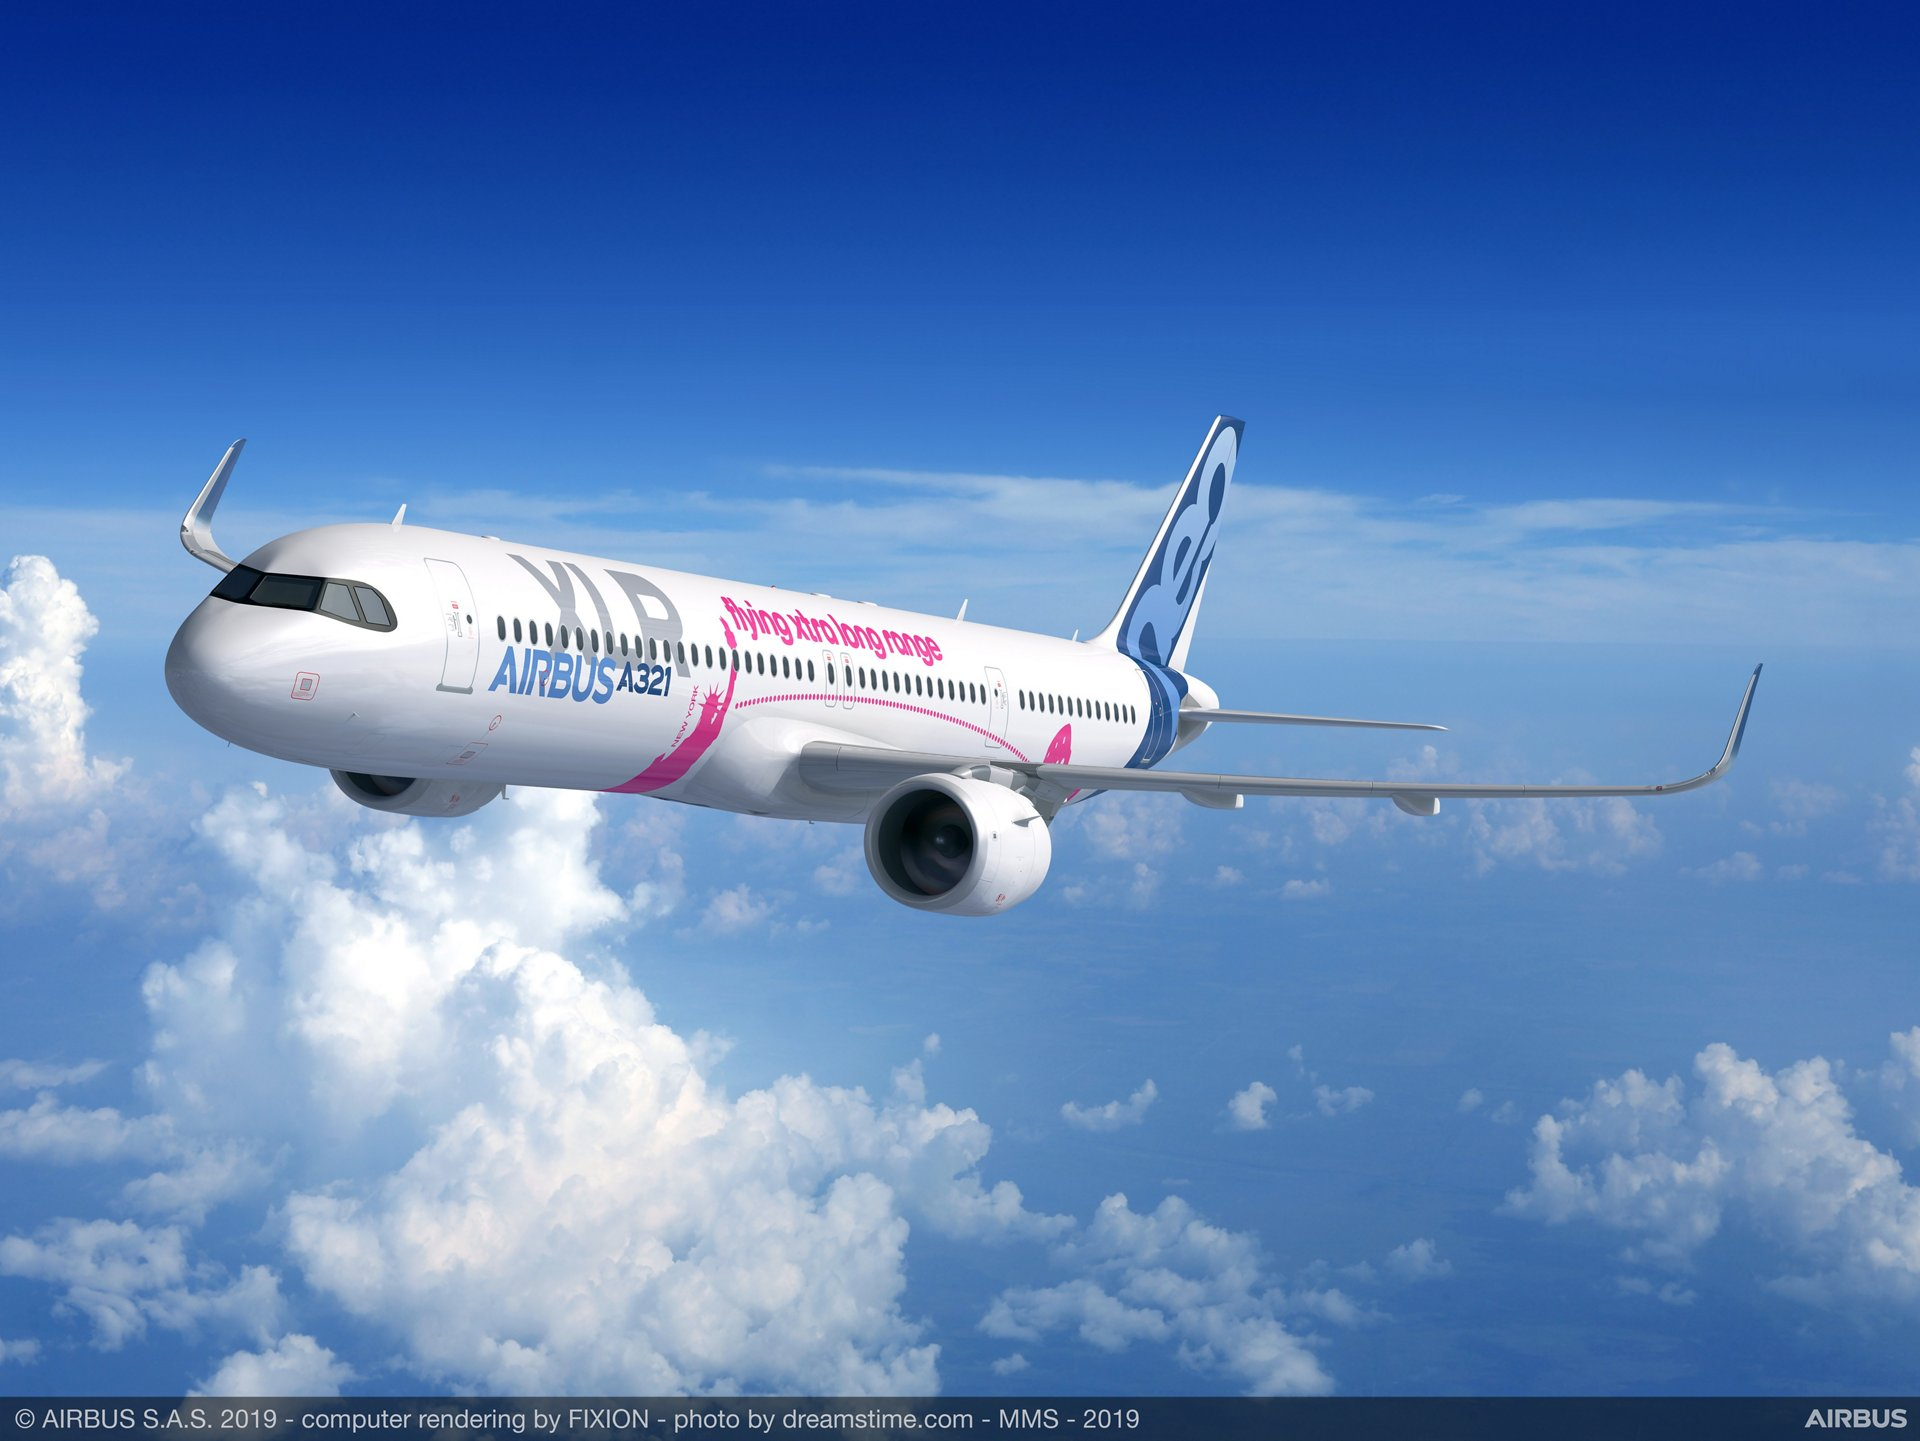 Airbus launches longest range single-aisle airliner: the A321XLR